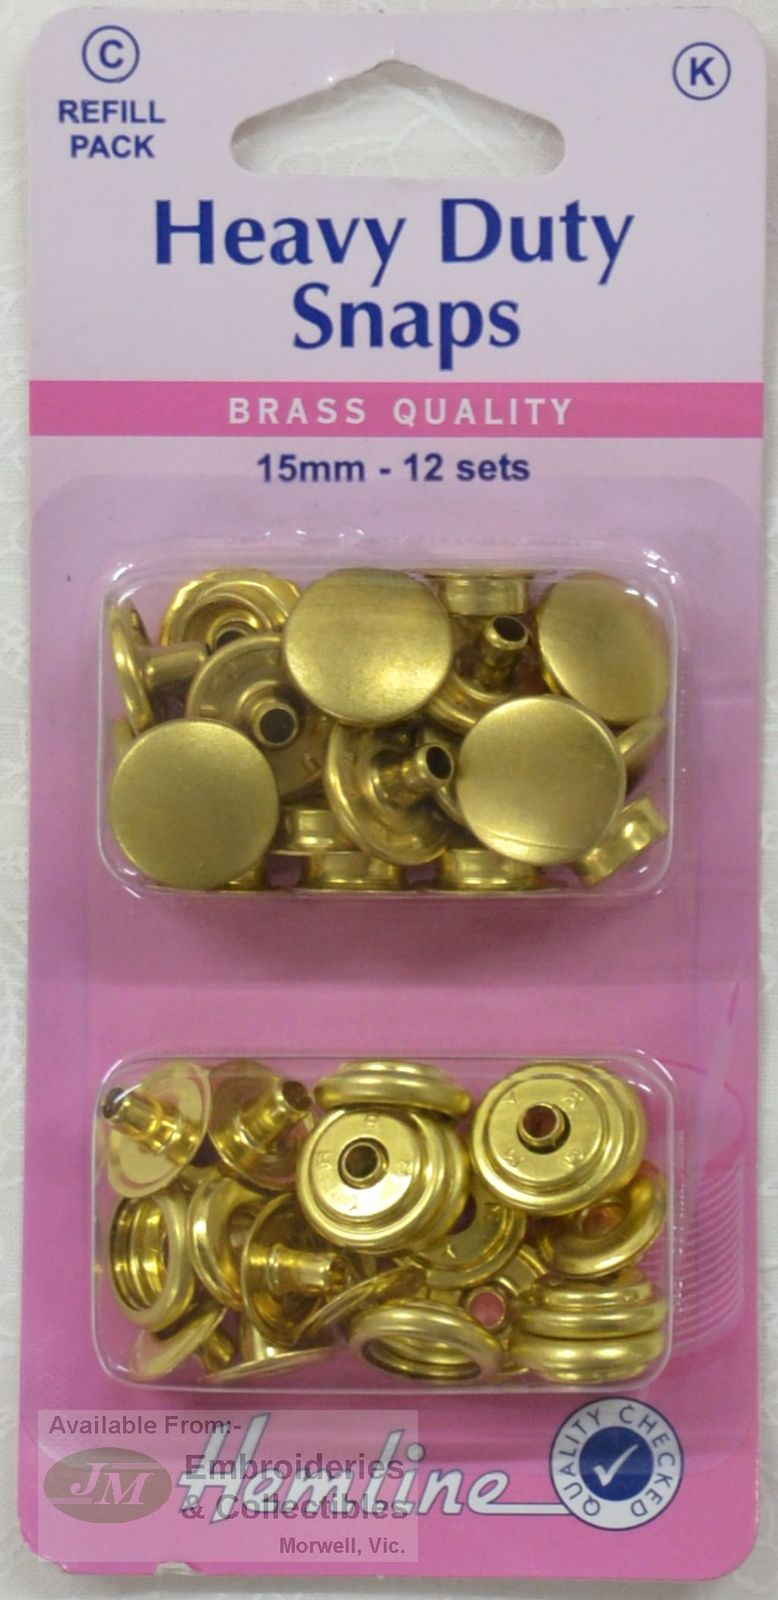 GOLD Colour 15mm 12 Sets Brass Quality Hemline Heavy Duty Snaps Refill Pack